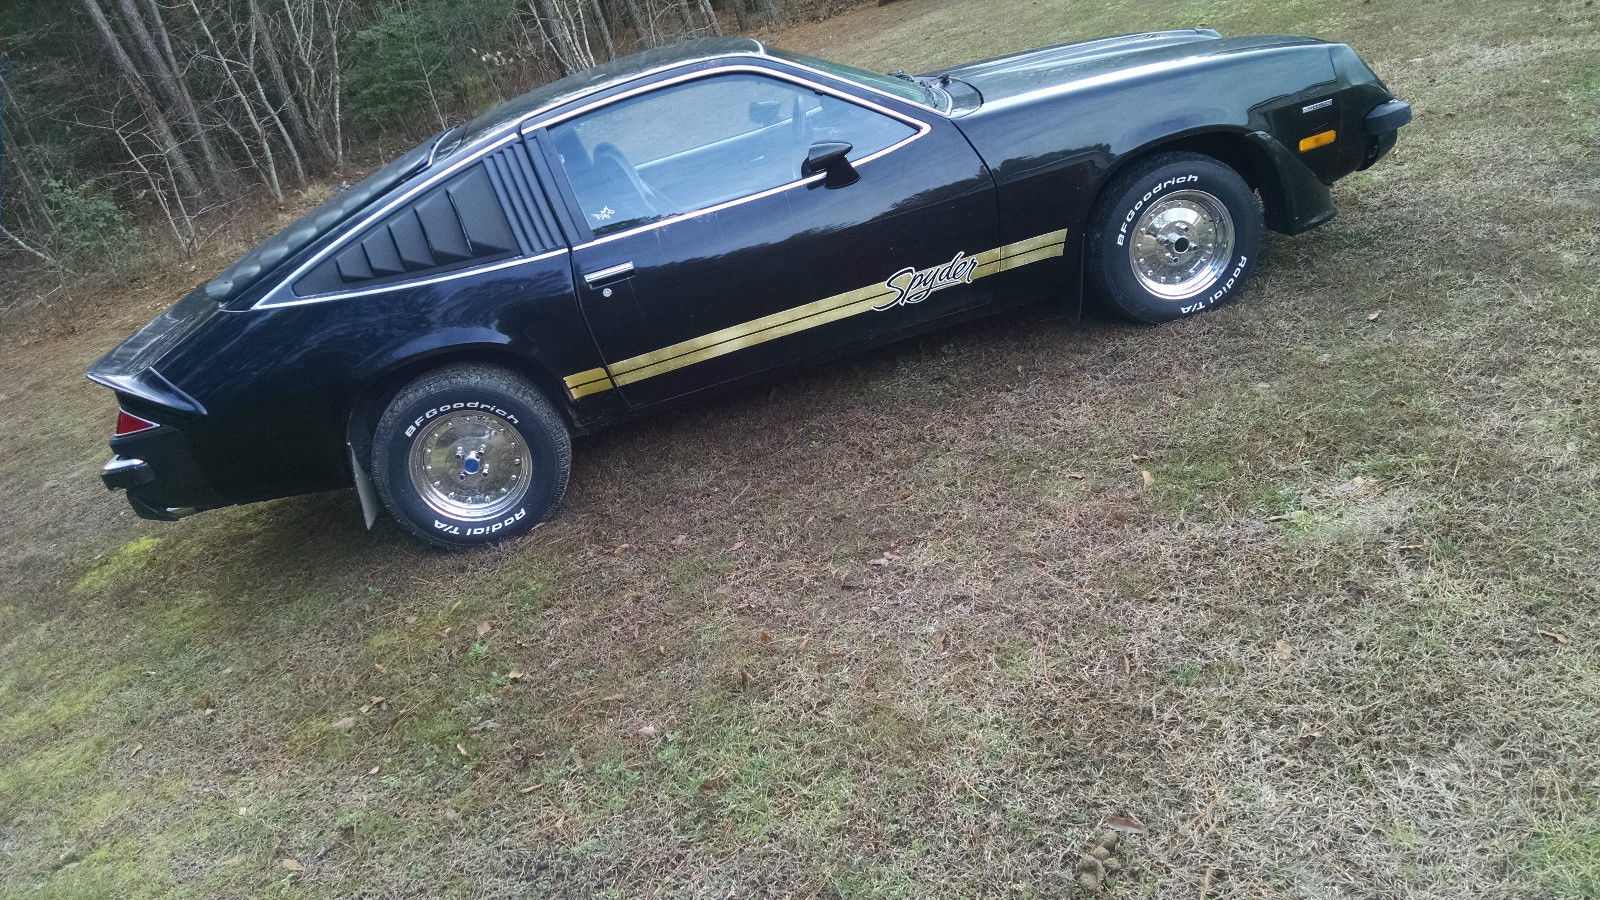 1978 Chevrolet Monza Spyder - Black - Classic Chevrolet Other 1978 for sale